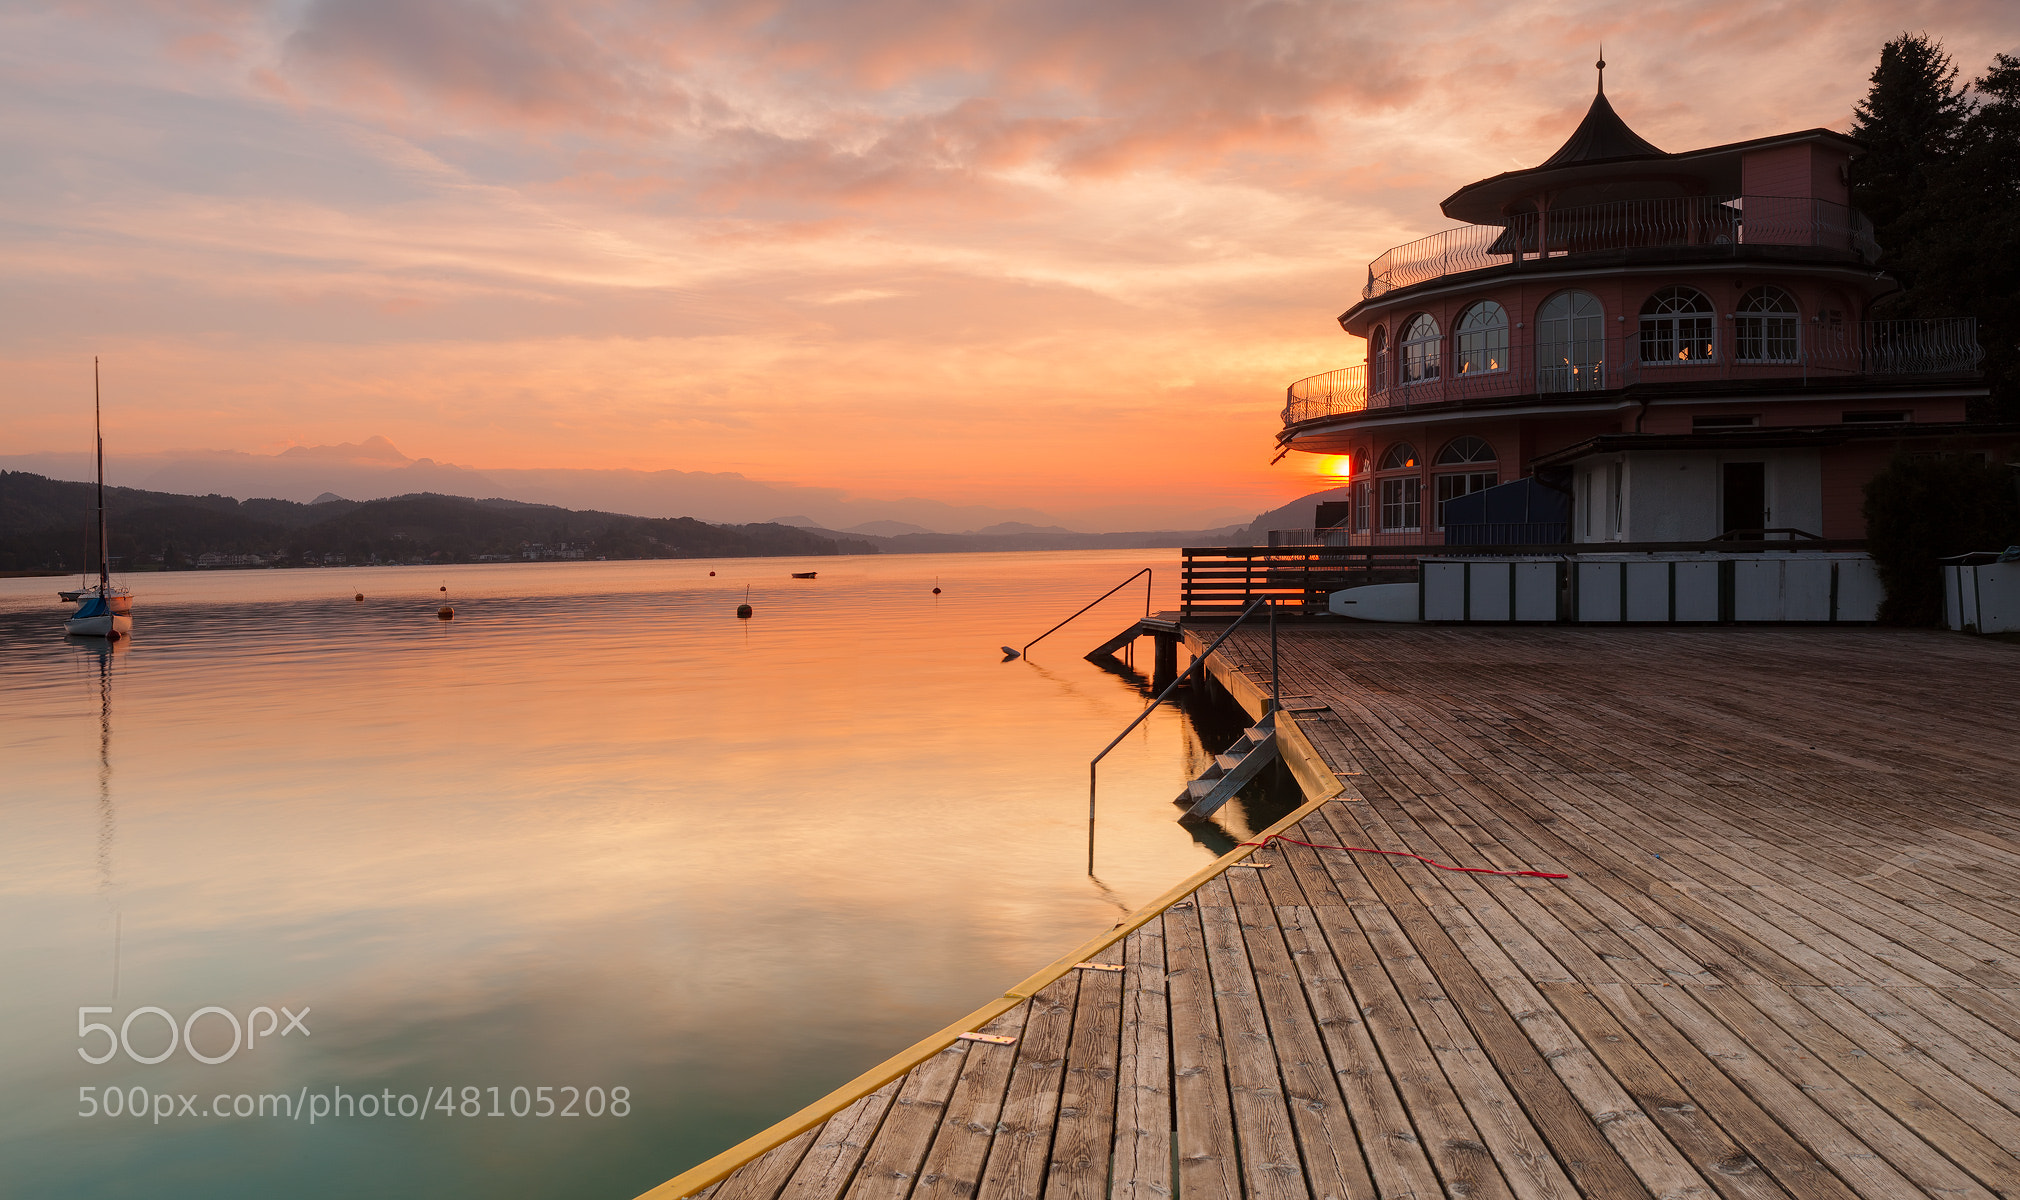 Photograph Wörthersee sunset by Reinhold Samonigg on 500px